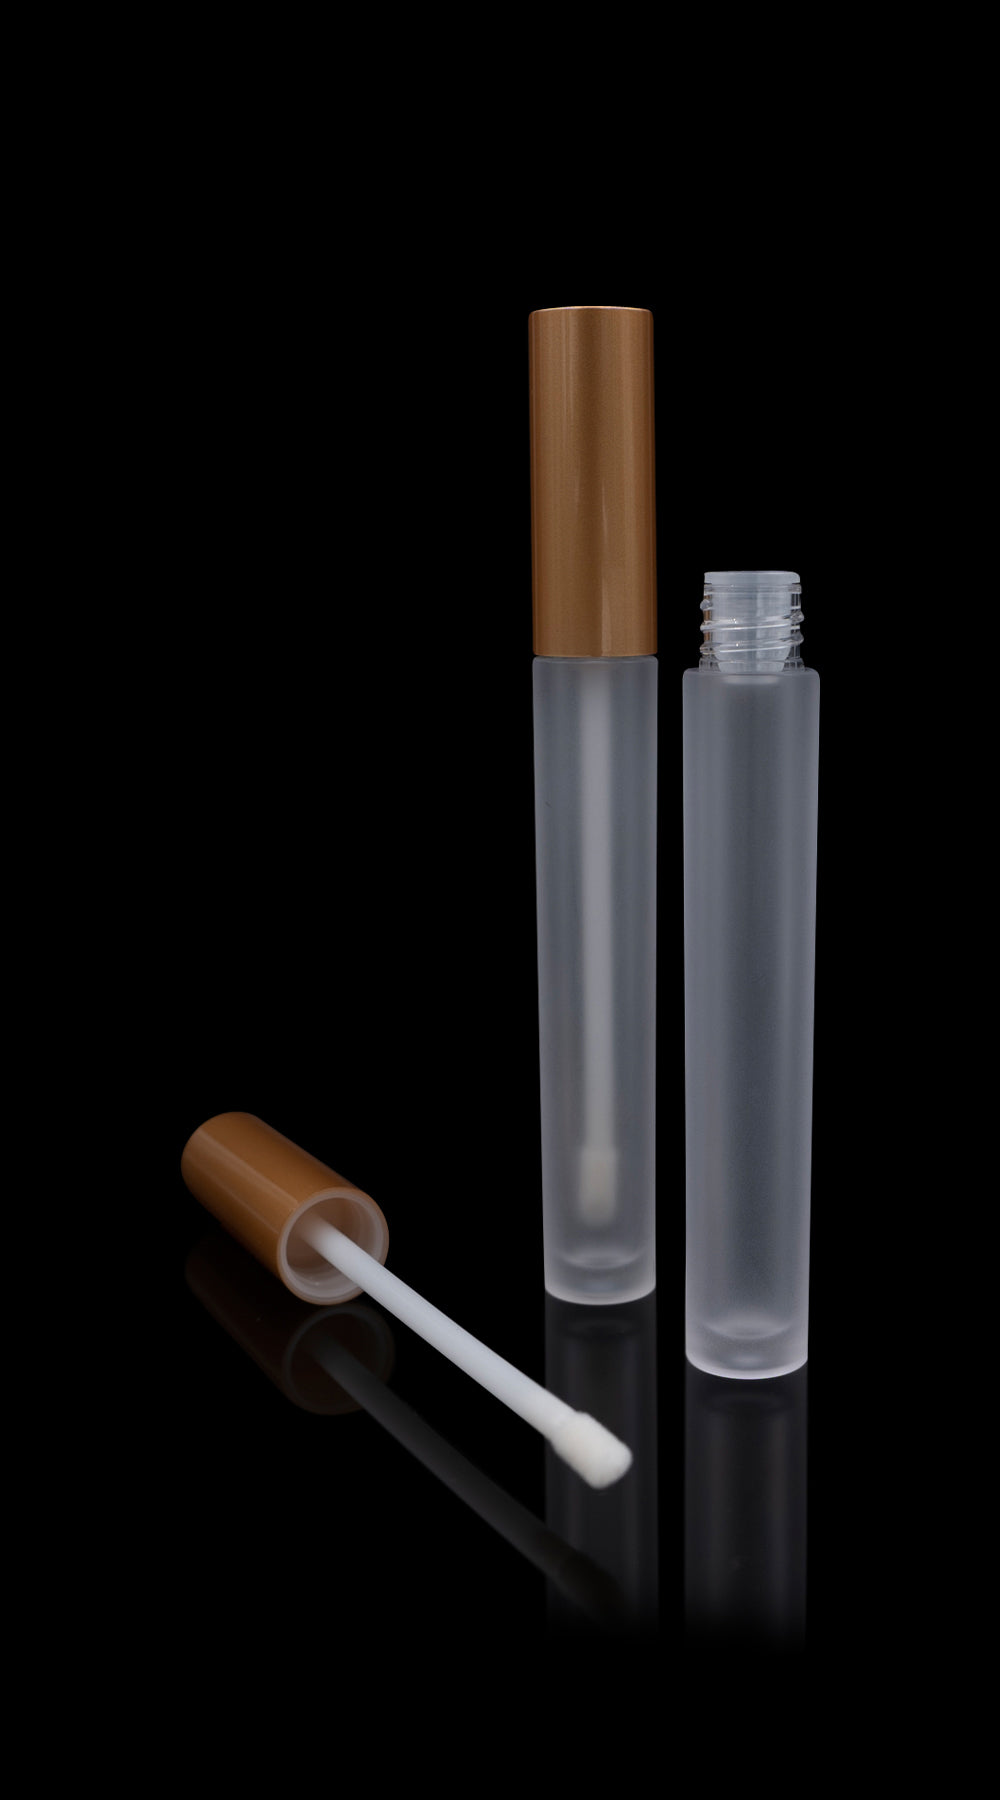 Vibe Lip Gloss Container Matte Gold Cap with Frosted Bottle - Cosmetic Packaging Now